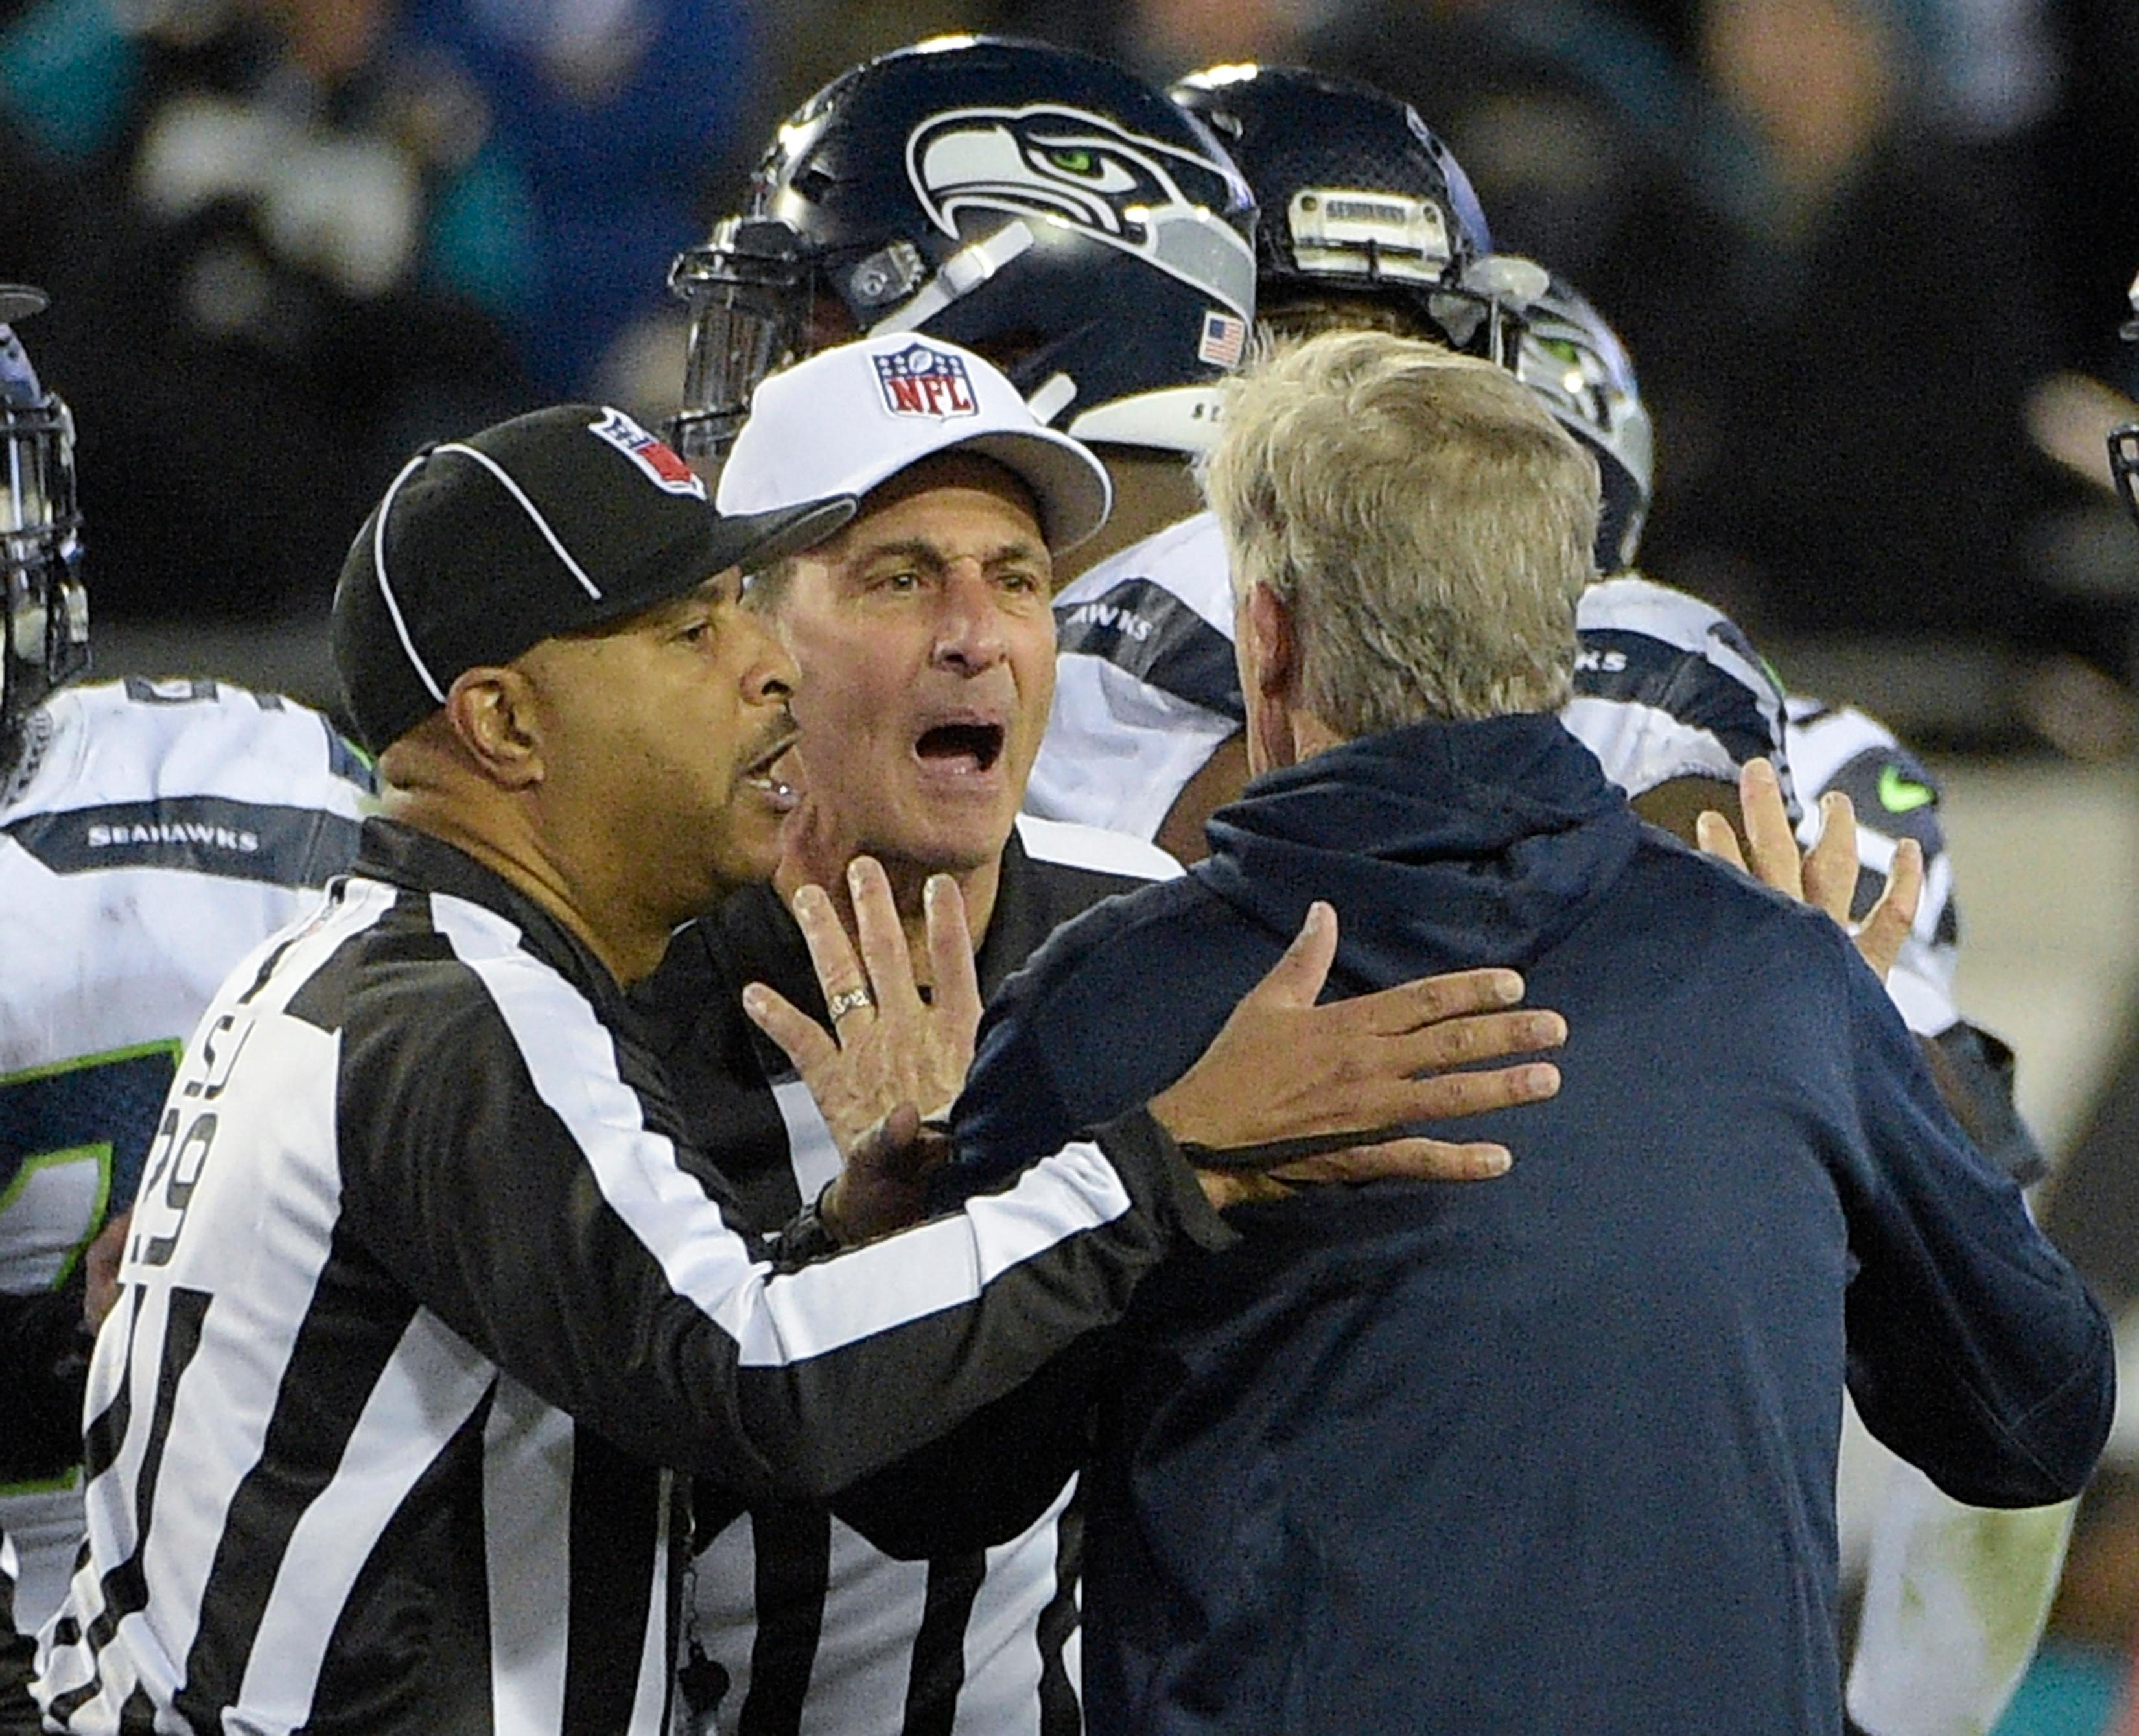 Seattle Seahawks head coach Pete Carroll is held back by officials after he ran on the field during the final moments of an NFL football game Sunday, Dec. 10, 2017, in Jacksonville, Fla. Jacksonville won 30-24. Carroll got flagged for coming onto the field. (AP Photo/Phelan M. Ebenhack)